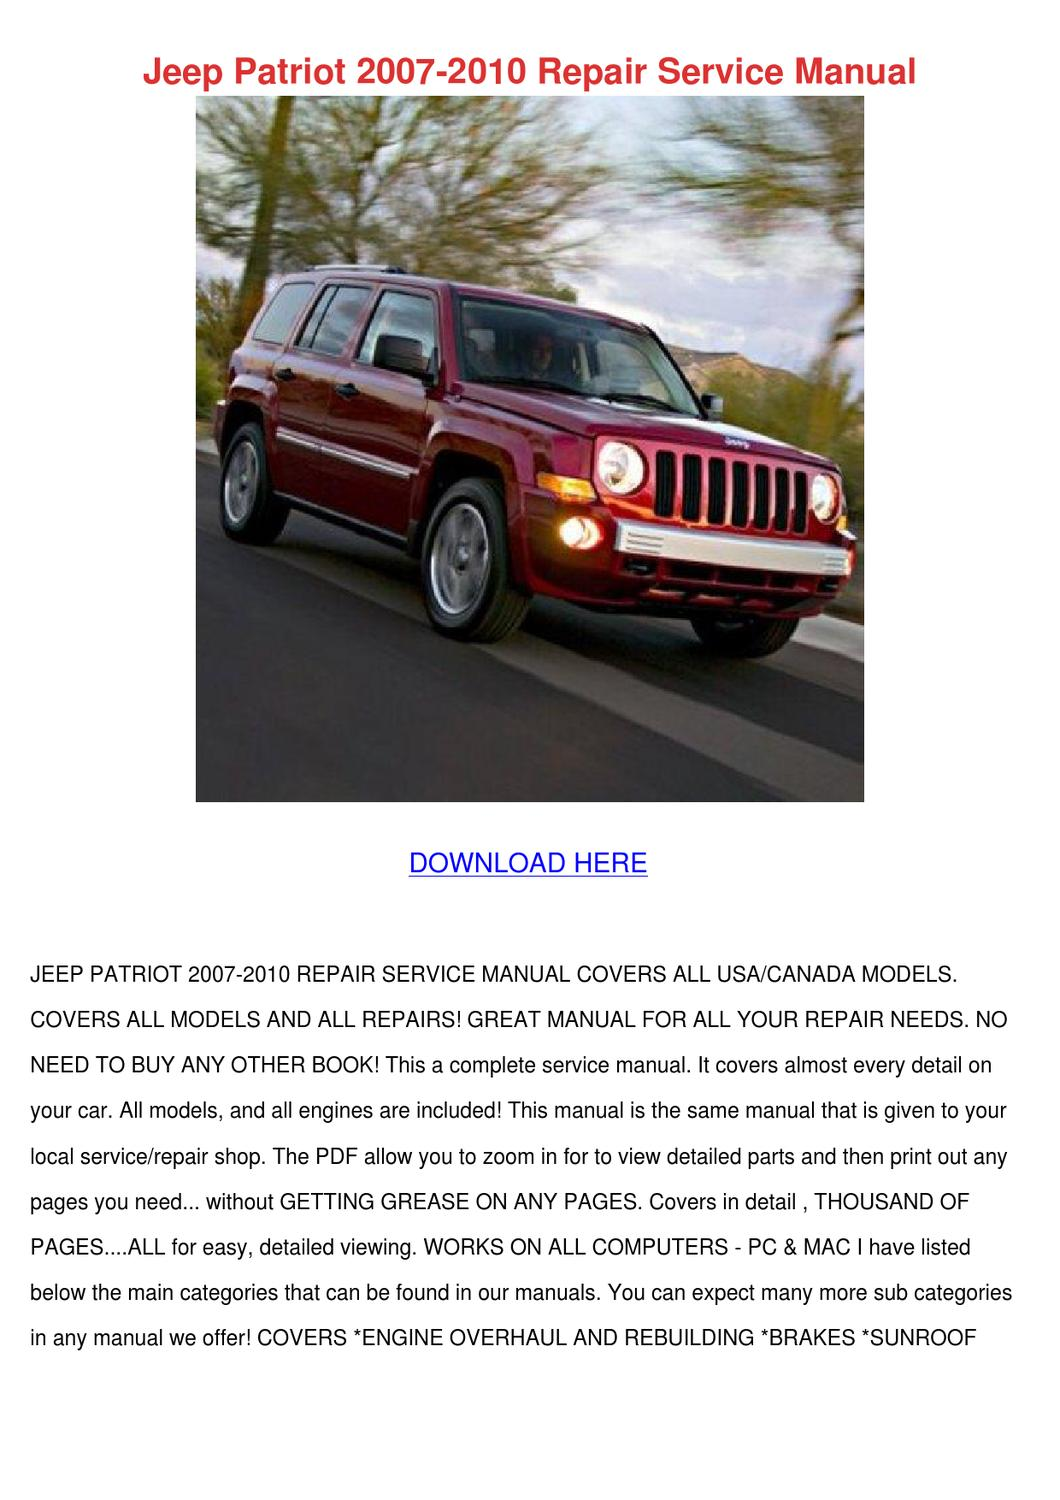 jeep patriot mirror replacement instructions